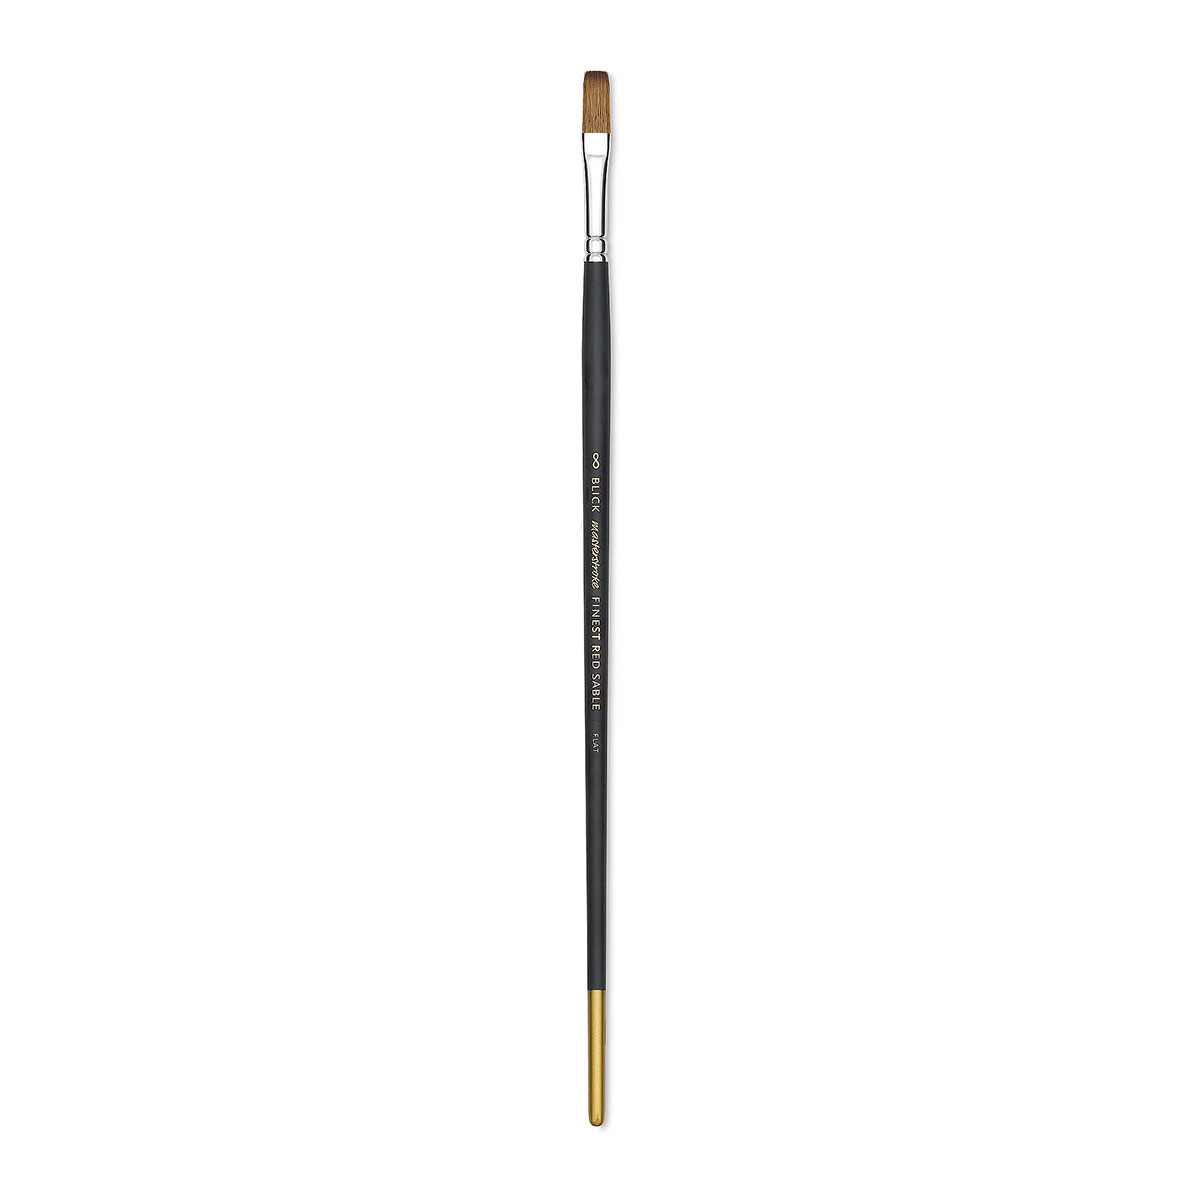 Blick Masterstroke Finest Red Sable Brush - Flat, Size 8, Long Handle